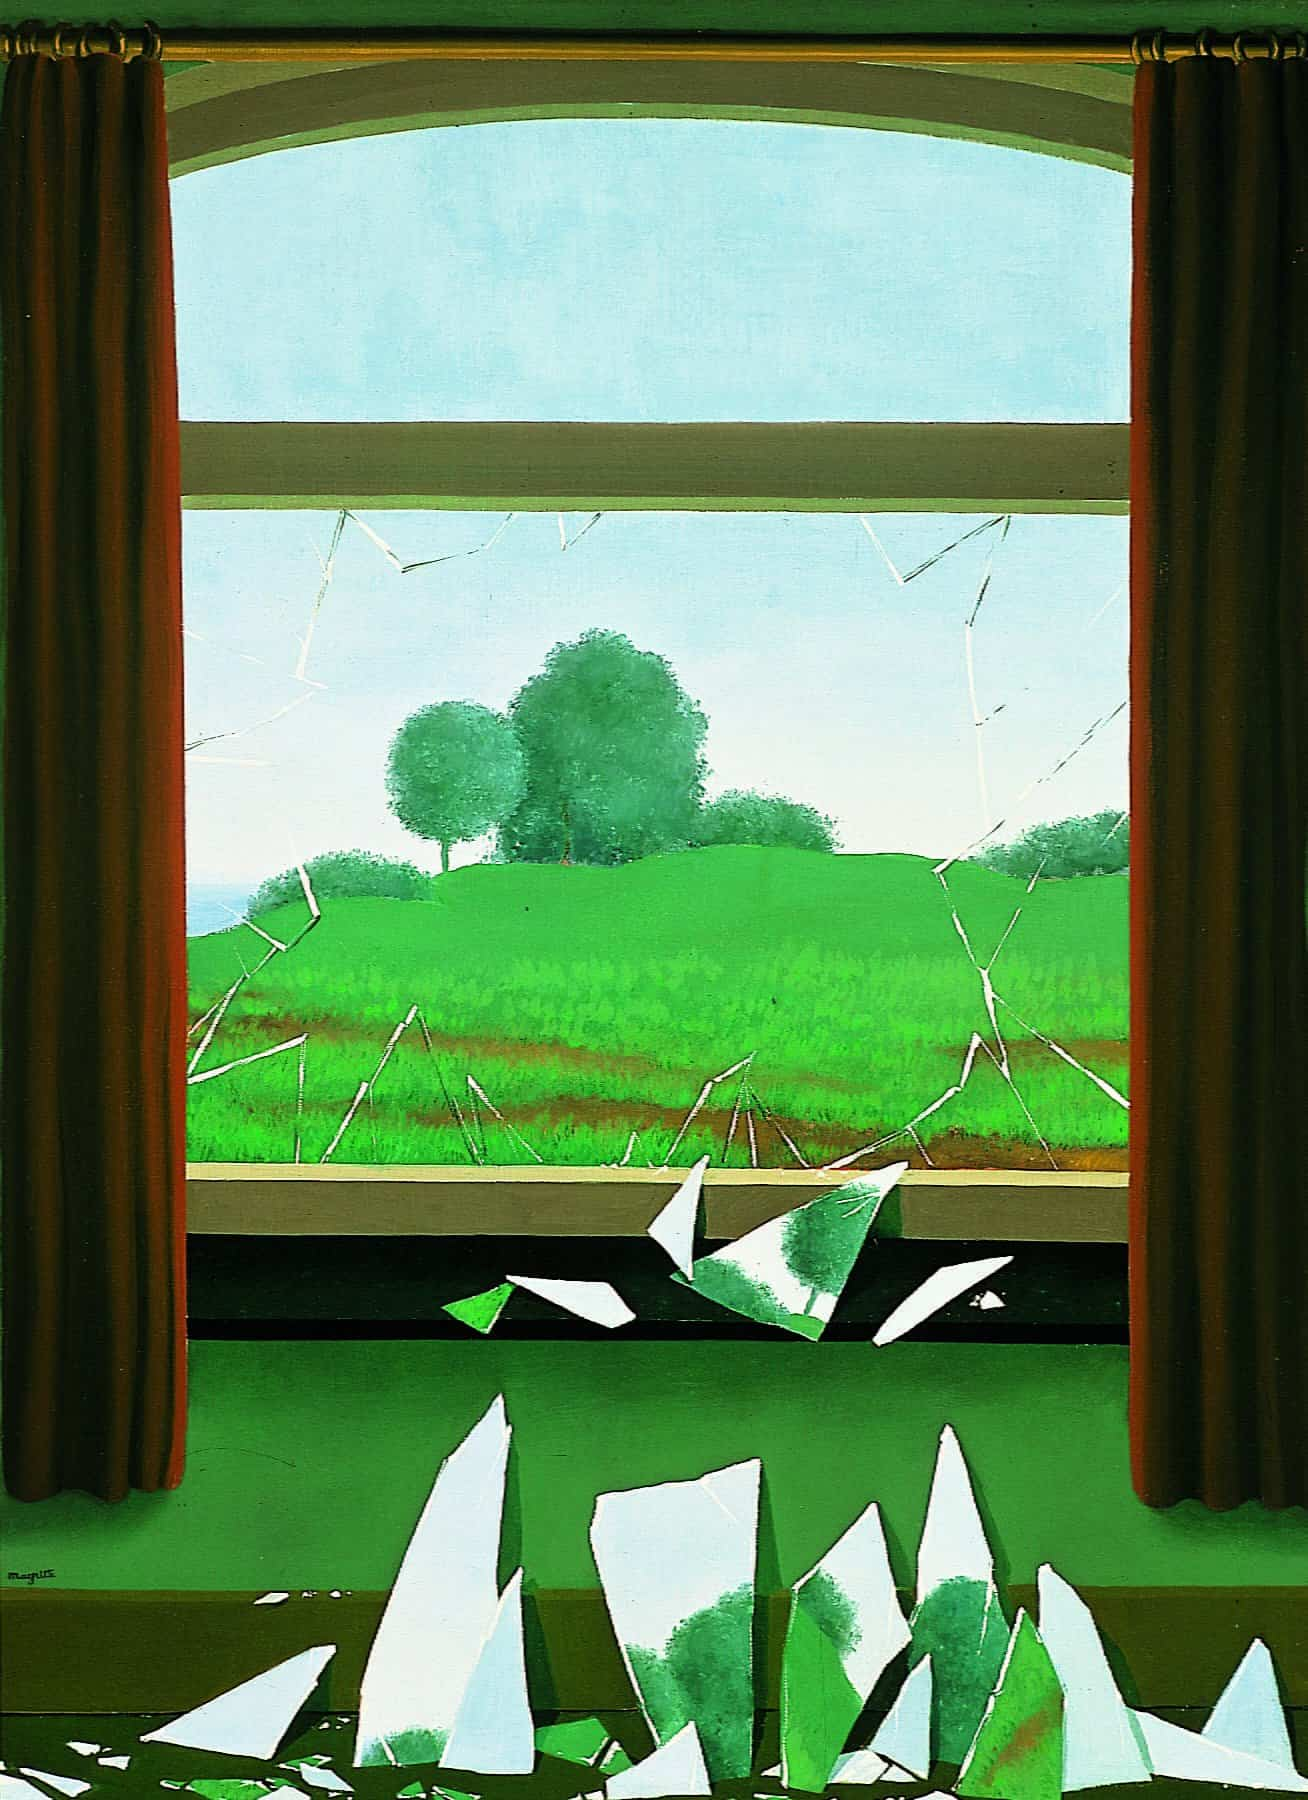 René MAGRITTE The key to the fields La clef des champs De sleutel tot de velden 1936 oil on canvas 80 x 60 cm Museo Nacional Thyssen-Bornemisza, Madrid, inv. no. 657 (1976.3) ©VEGAP, Madrid © 2019, Succession Magritte c/o SABAM